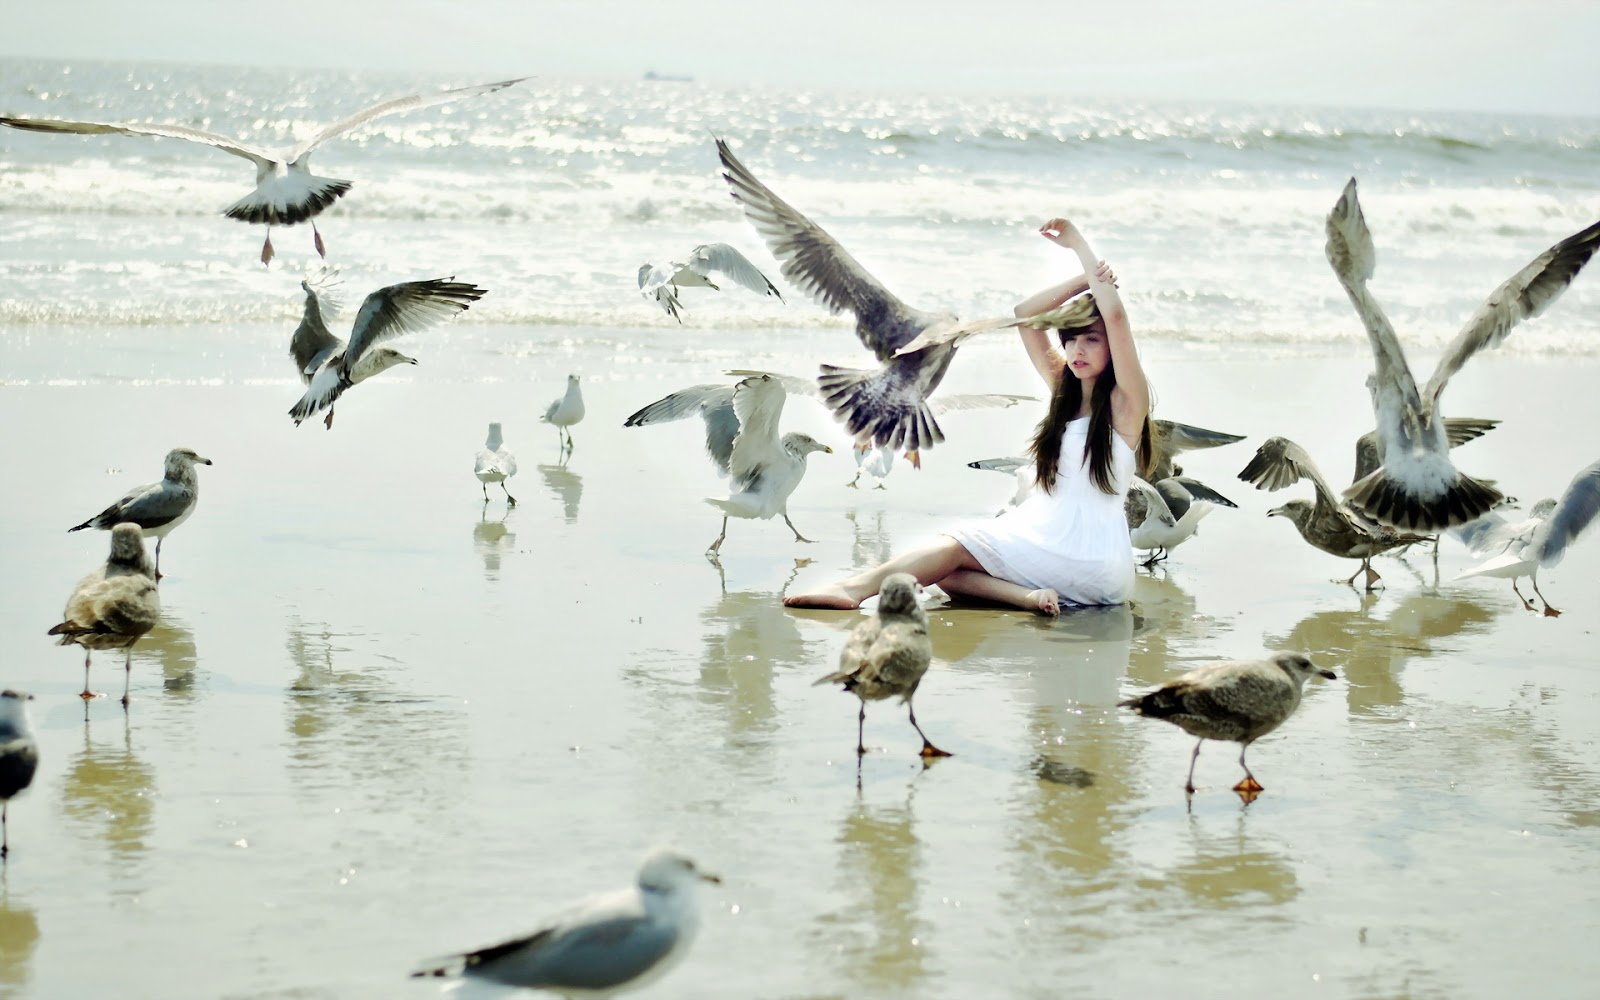 Girl and Seagulls on Beach